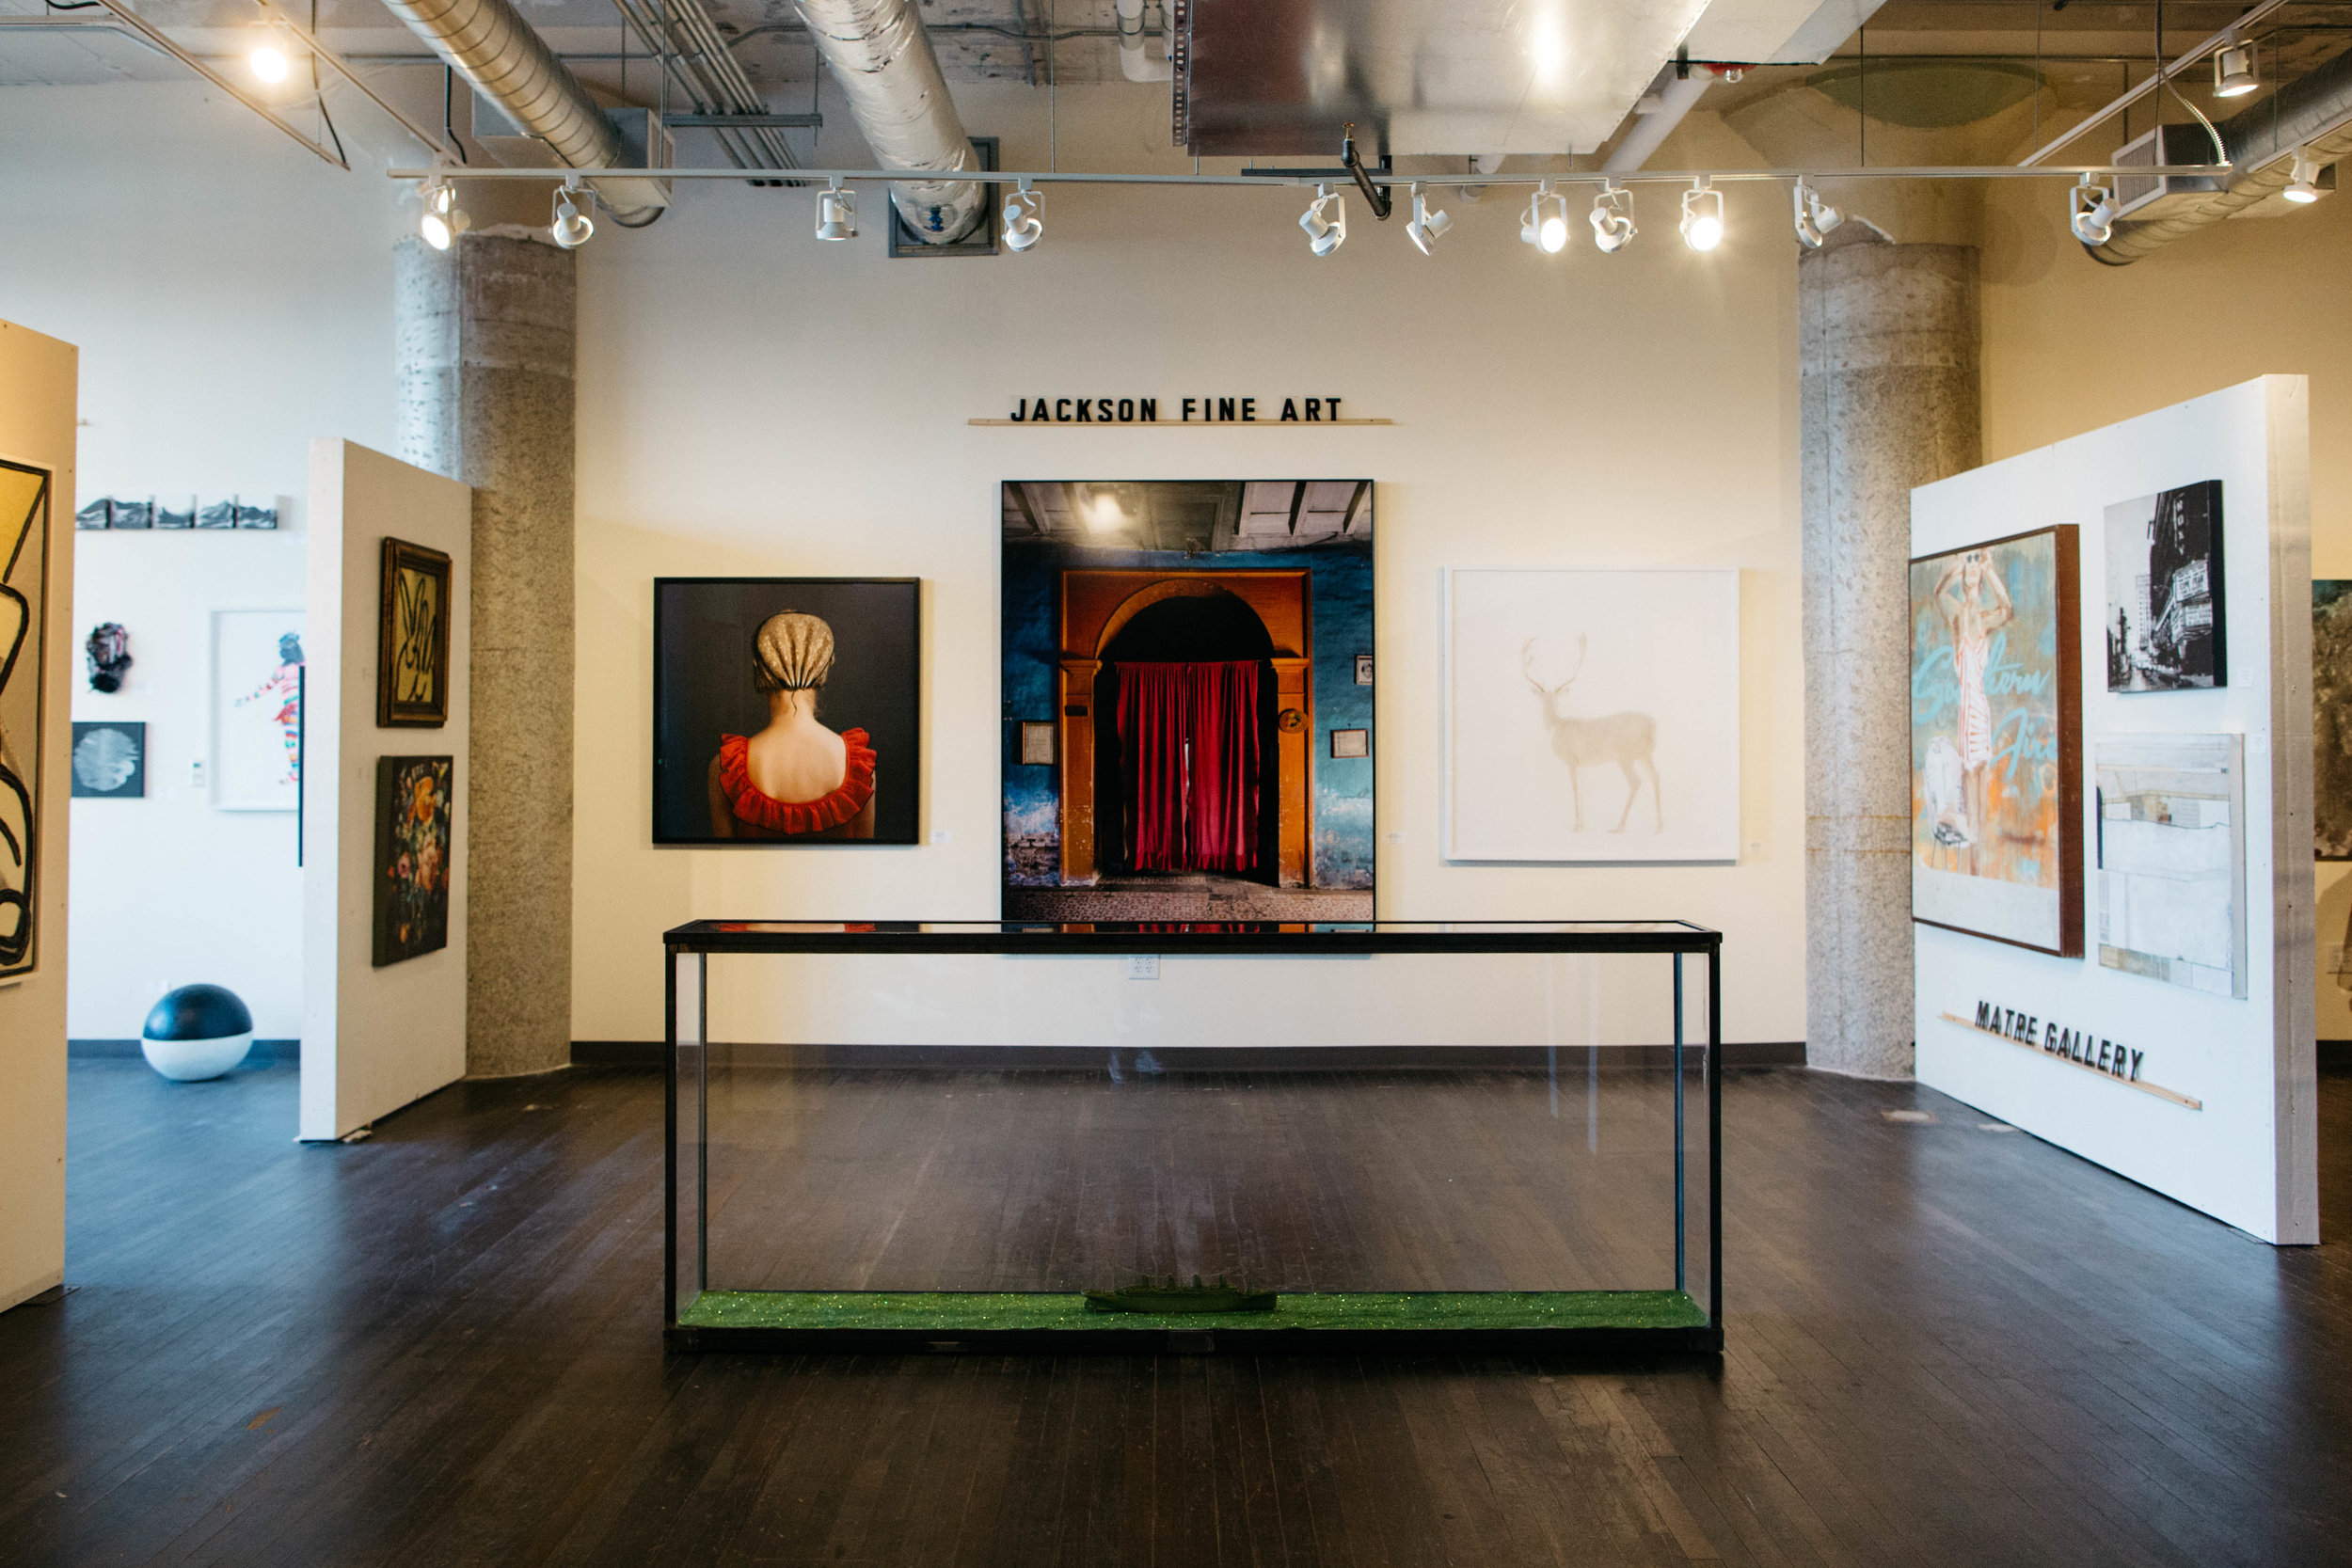 Exhibits rotated frequently inside the gallery to continue renewed interest in the space.